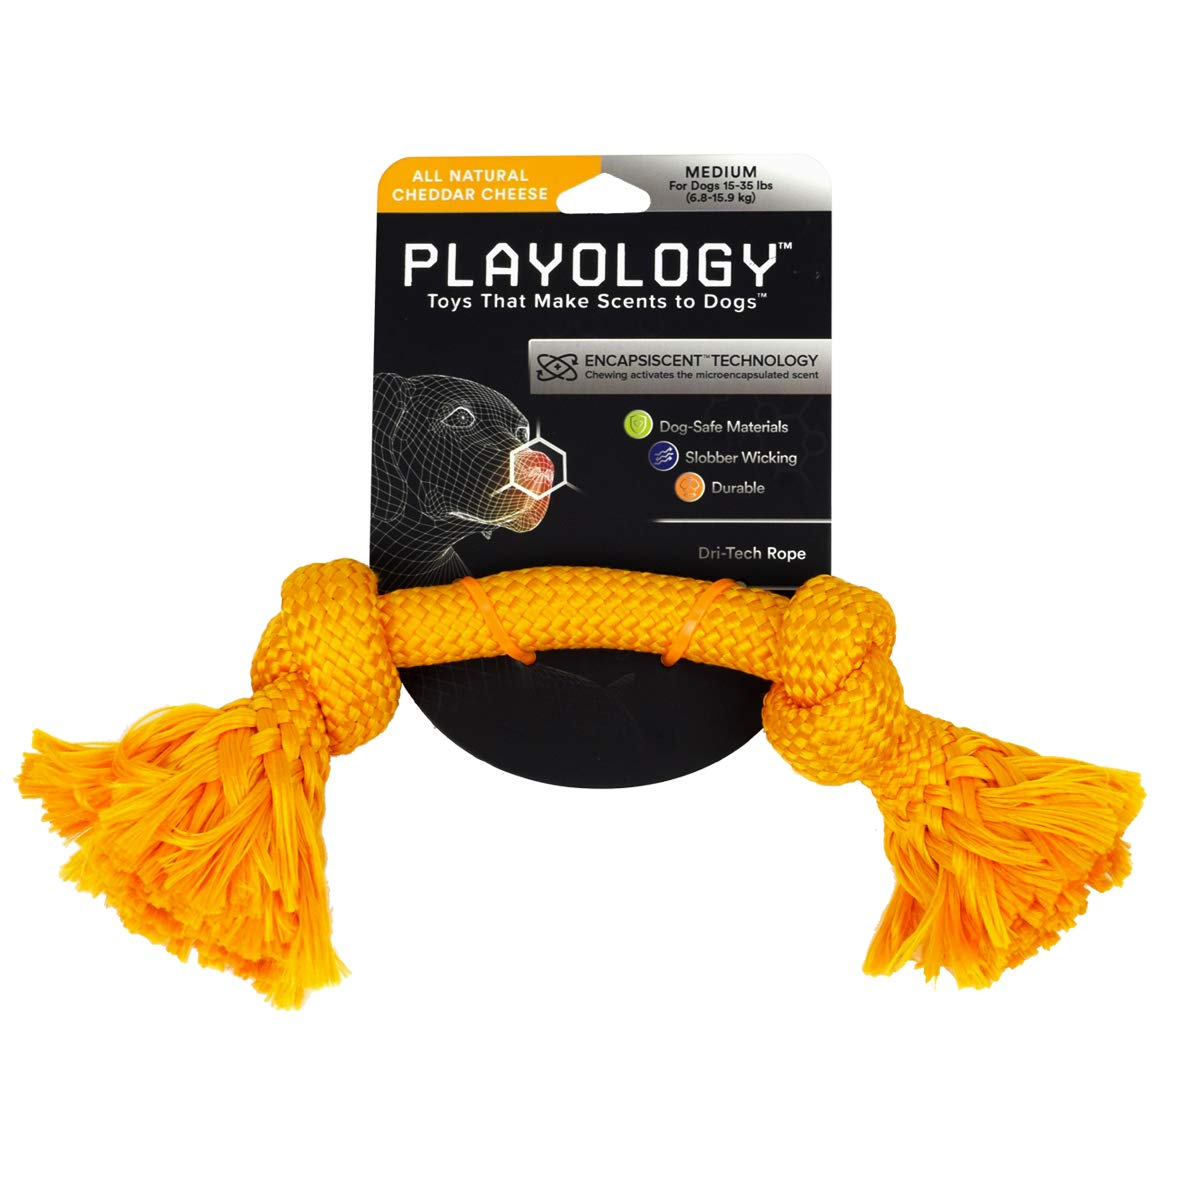 Cheddar Cheese (orange) Medium (15 35 lbs) Cheddar Cheese (orange) Medium (15 35 lbs) Playology Dri-Tech Rope, a Health-Enhancing Cheddar Cheese Scented Chewable Dog Toy That Inspires Exercising Play, 12  Long Medium, in orange for Canines 15-35 lb.